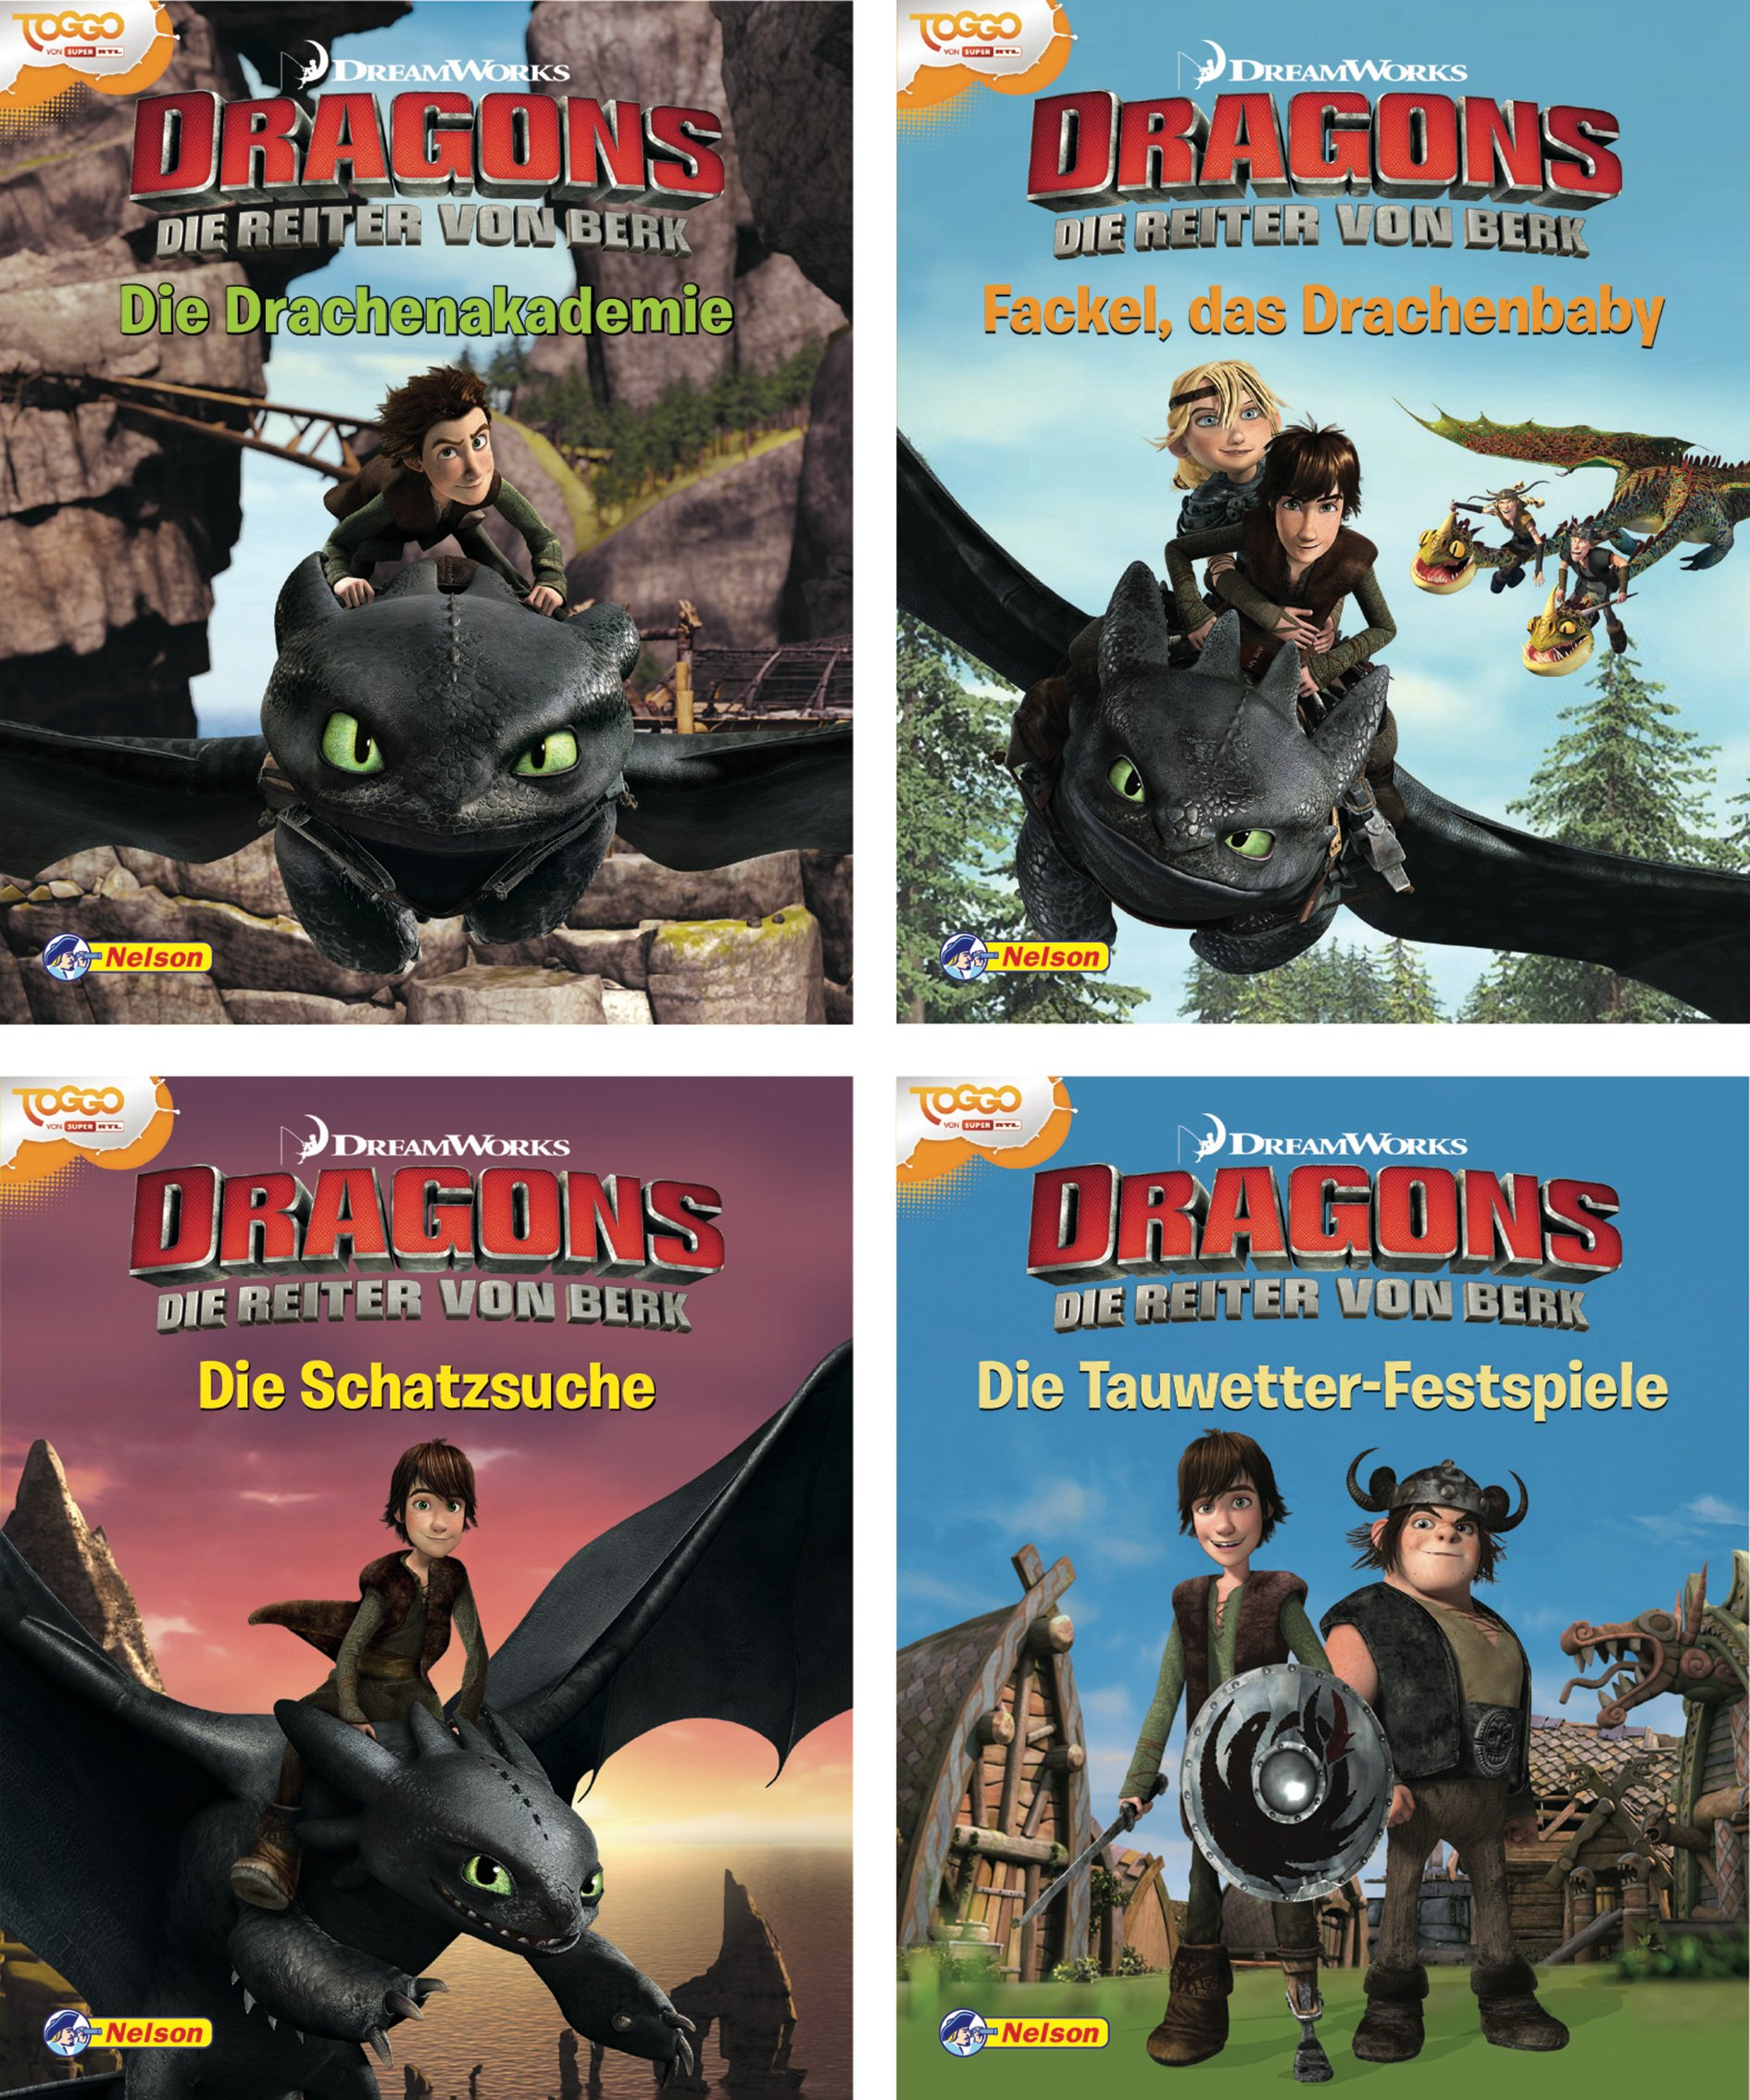 nelson-mini-bcher-4er-dreamworks-dragons-1-4